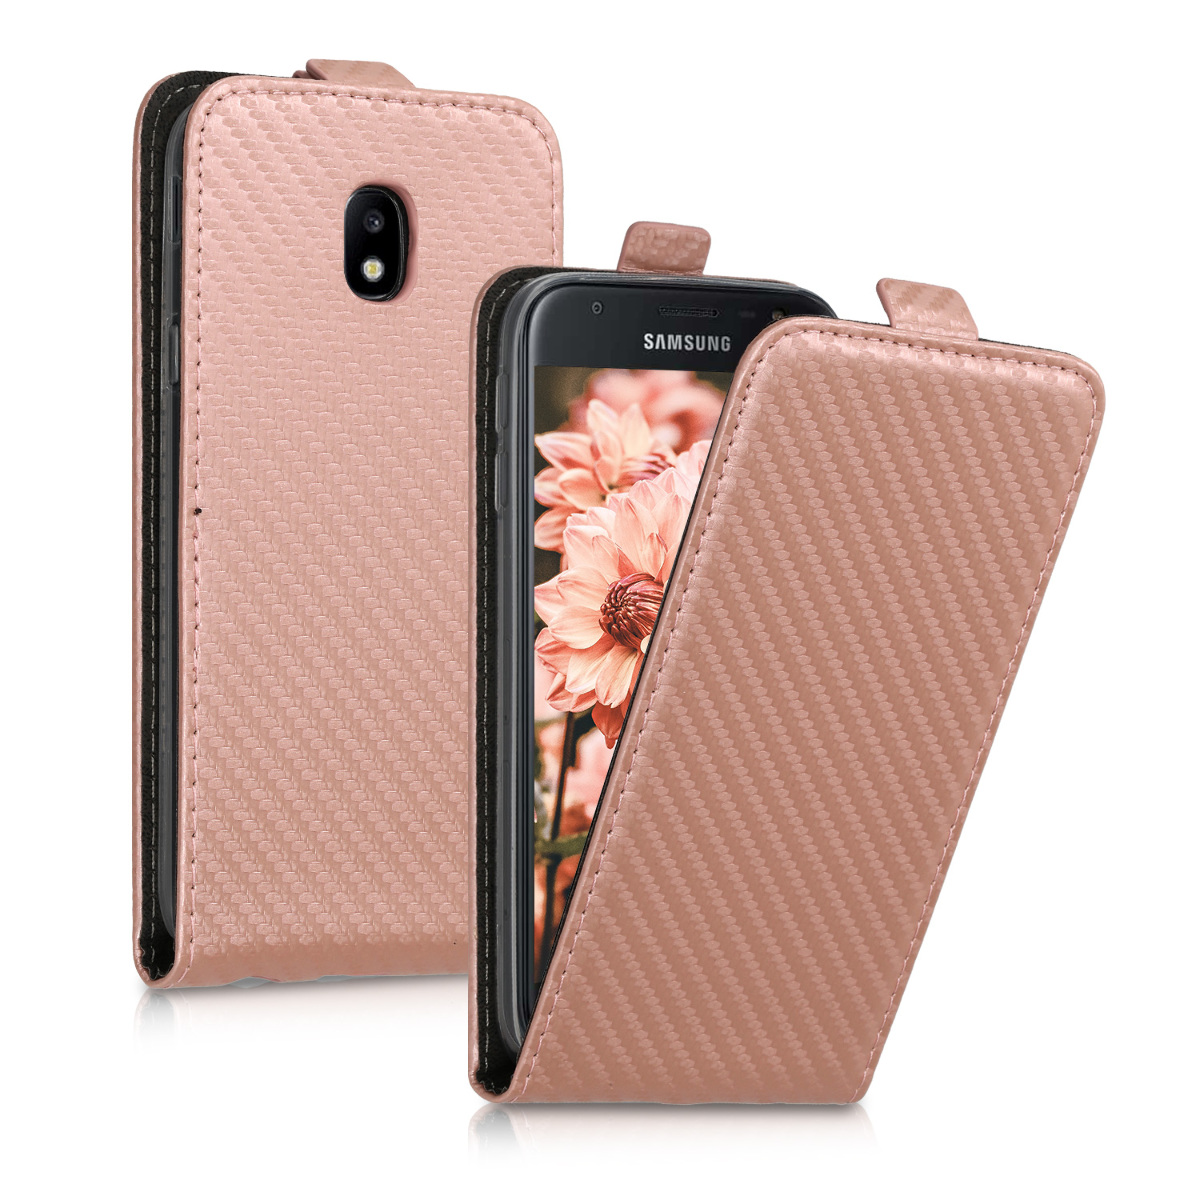 KW Flip Θήκη Samsung Galaxy J3 2017 - Rose Gold (46131.81)